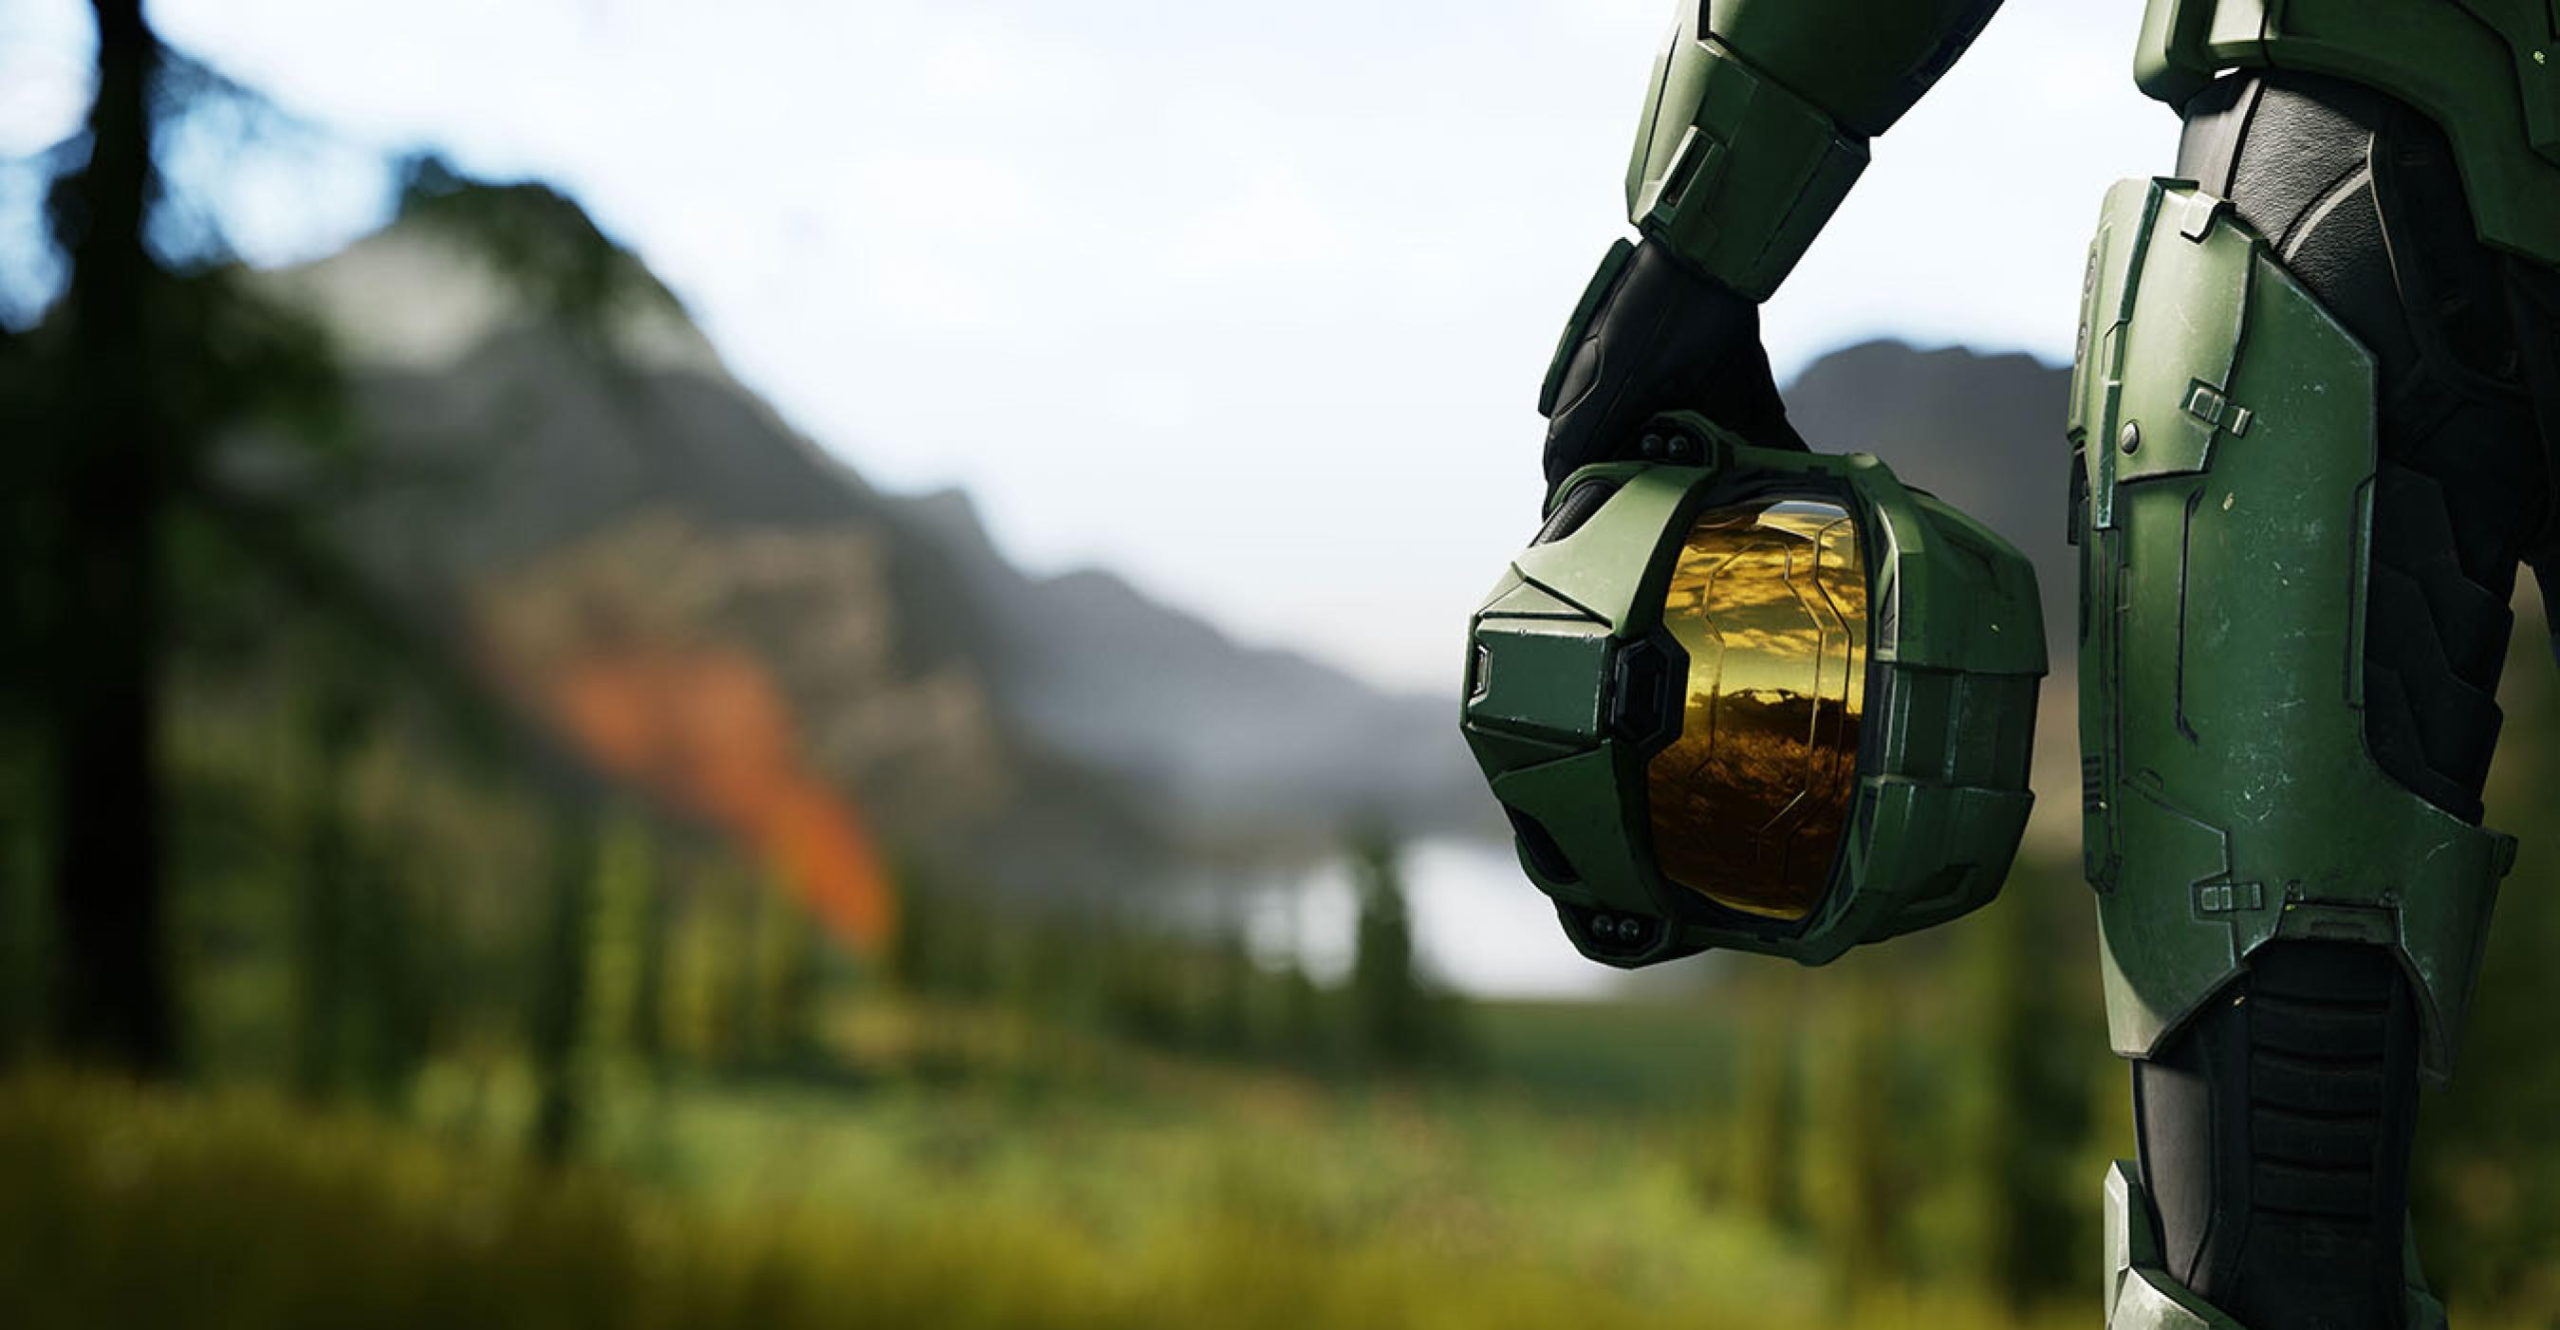 Halo Infinite delayed into next year, Xbox Series X launch not affected screenshot